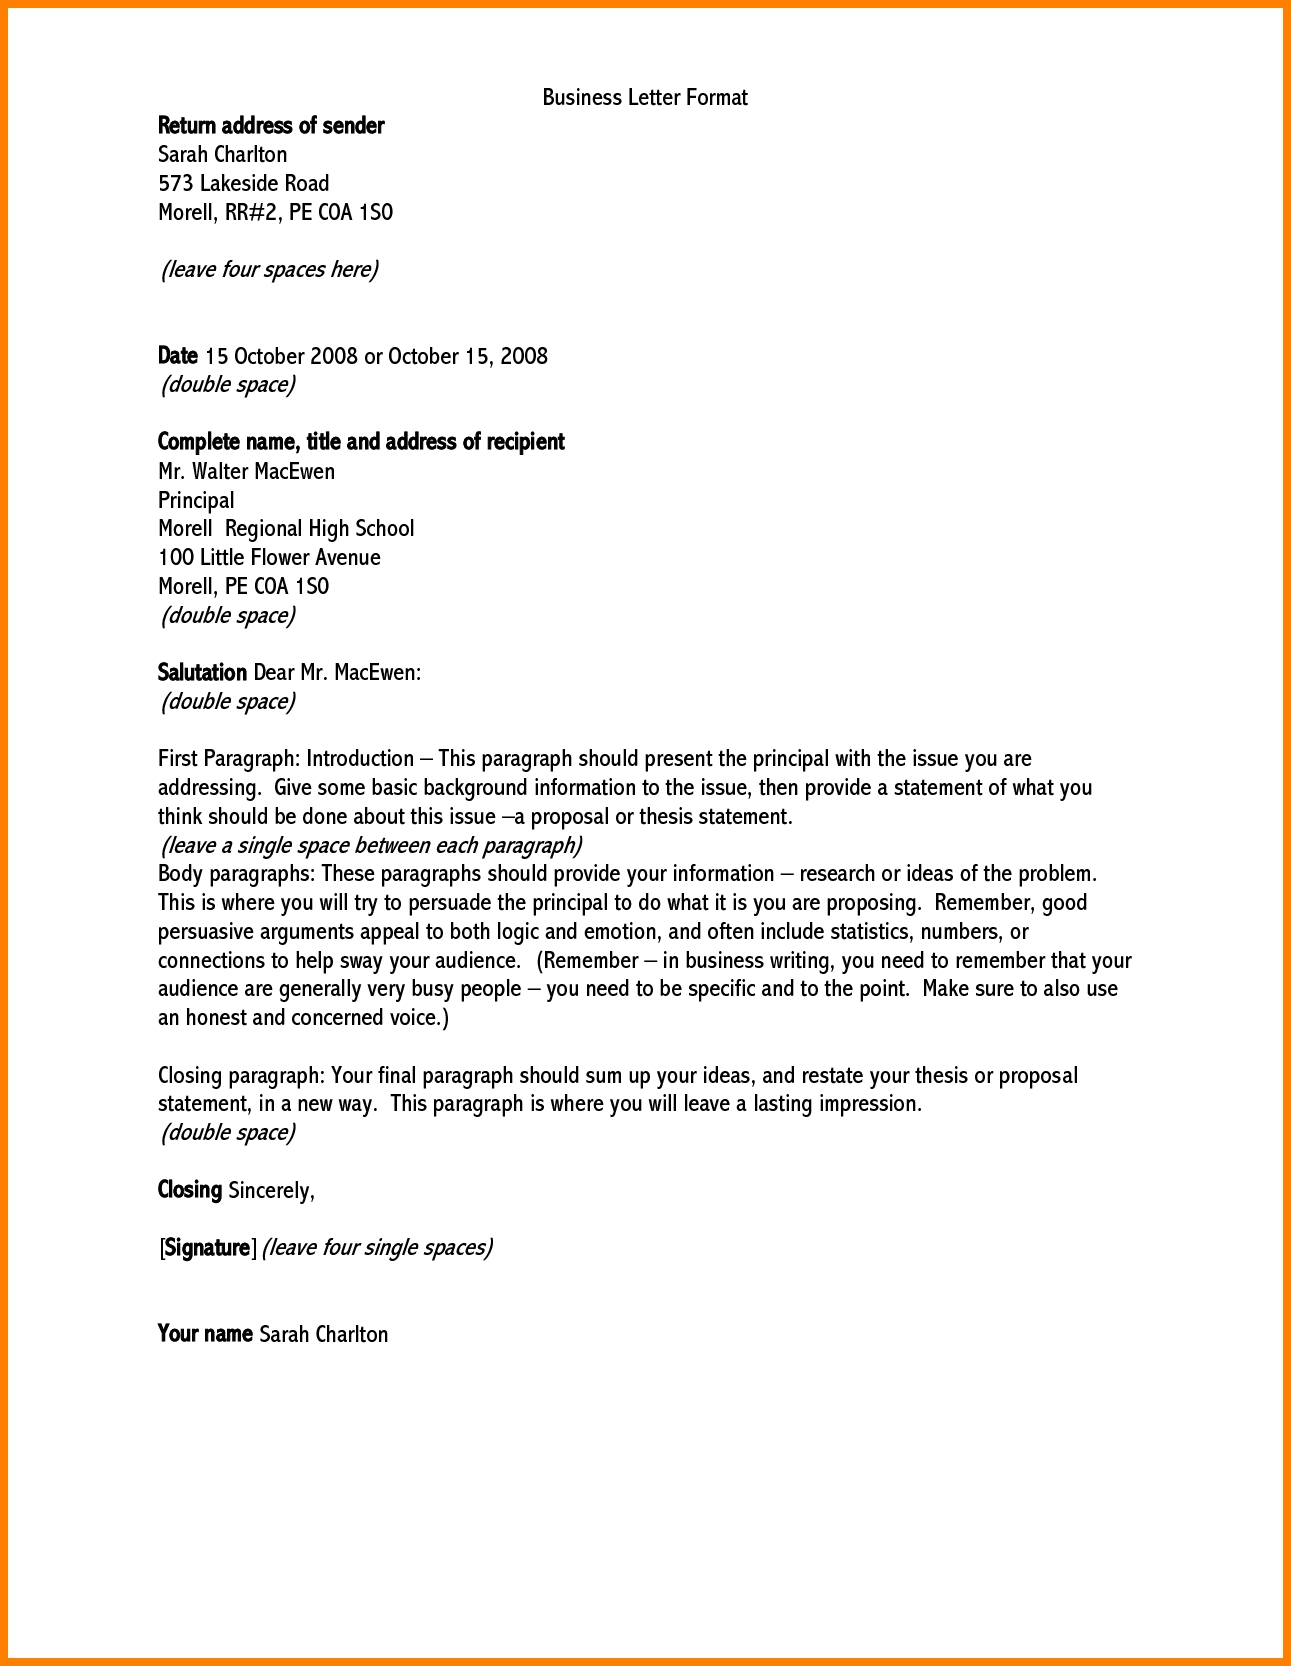 Business Letter Addressing Filename – elrey de bodas